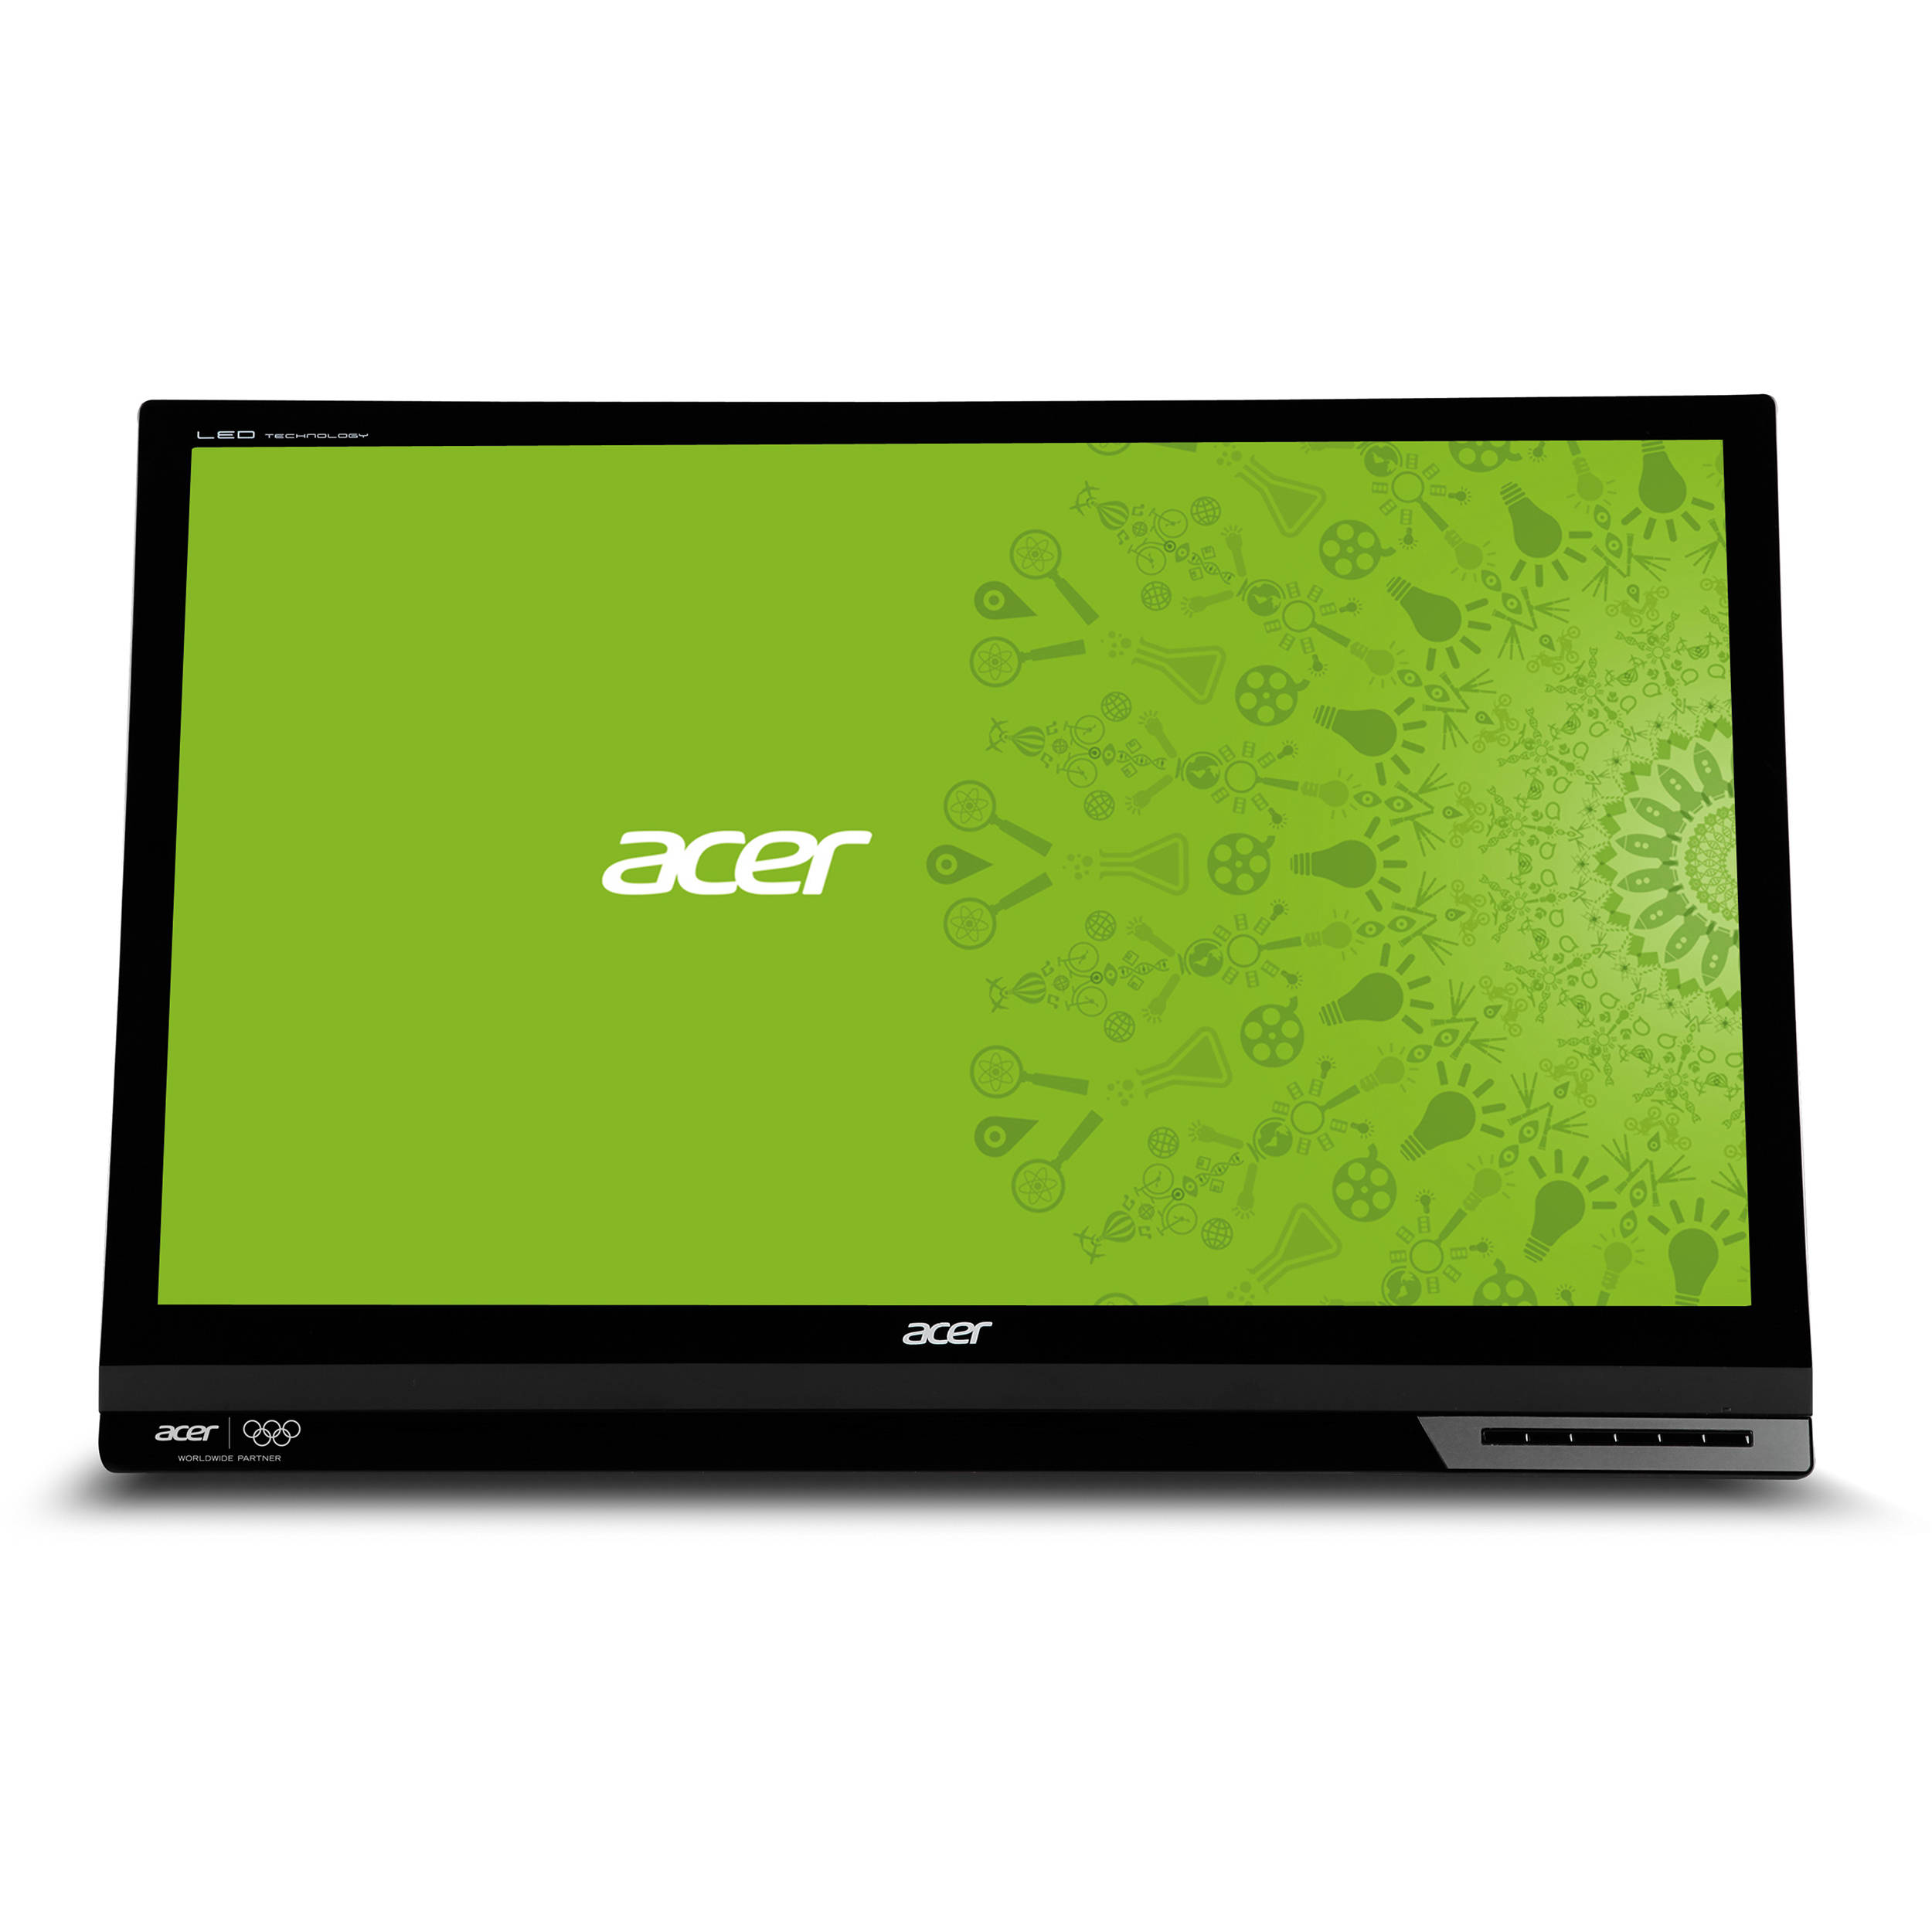 ACER P238HL WINDOWS 8 X64 DRIVER